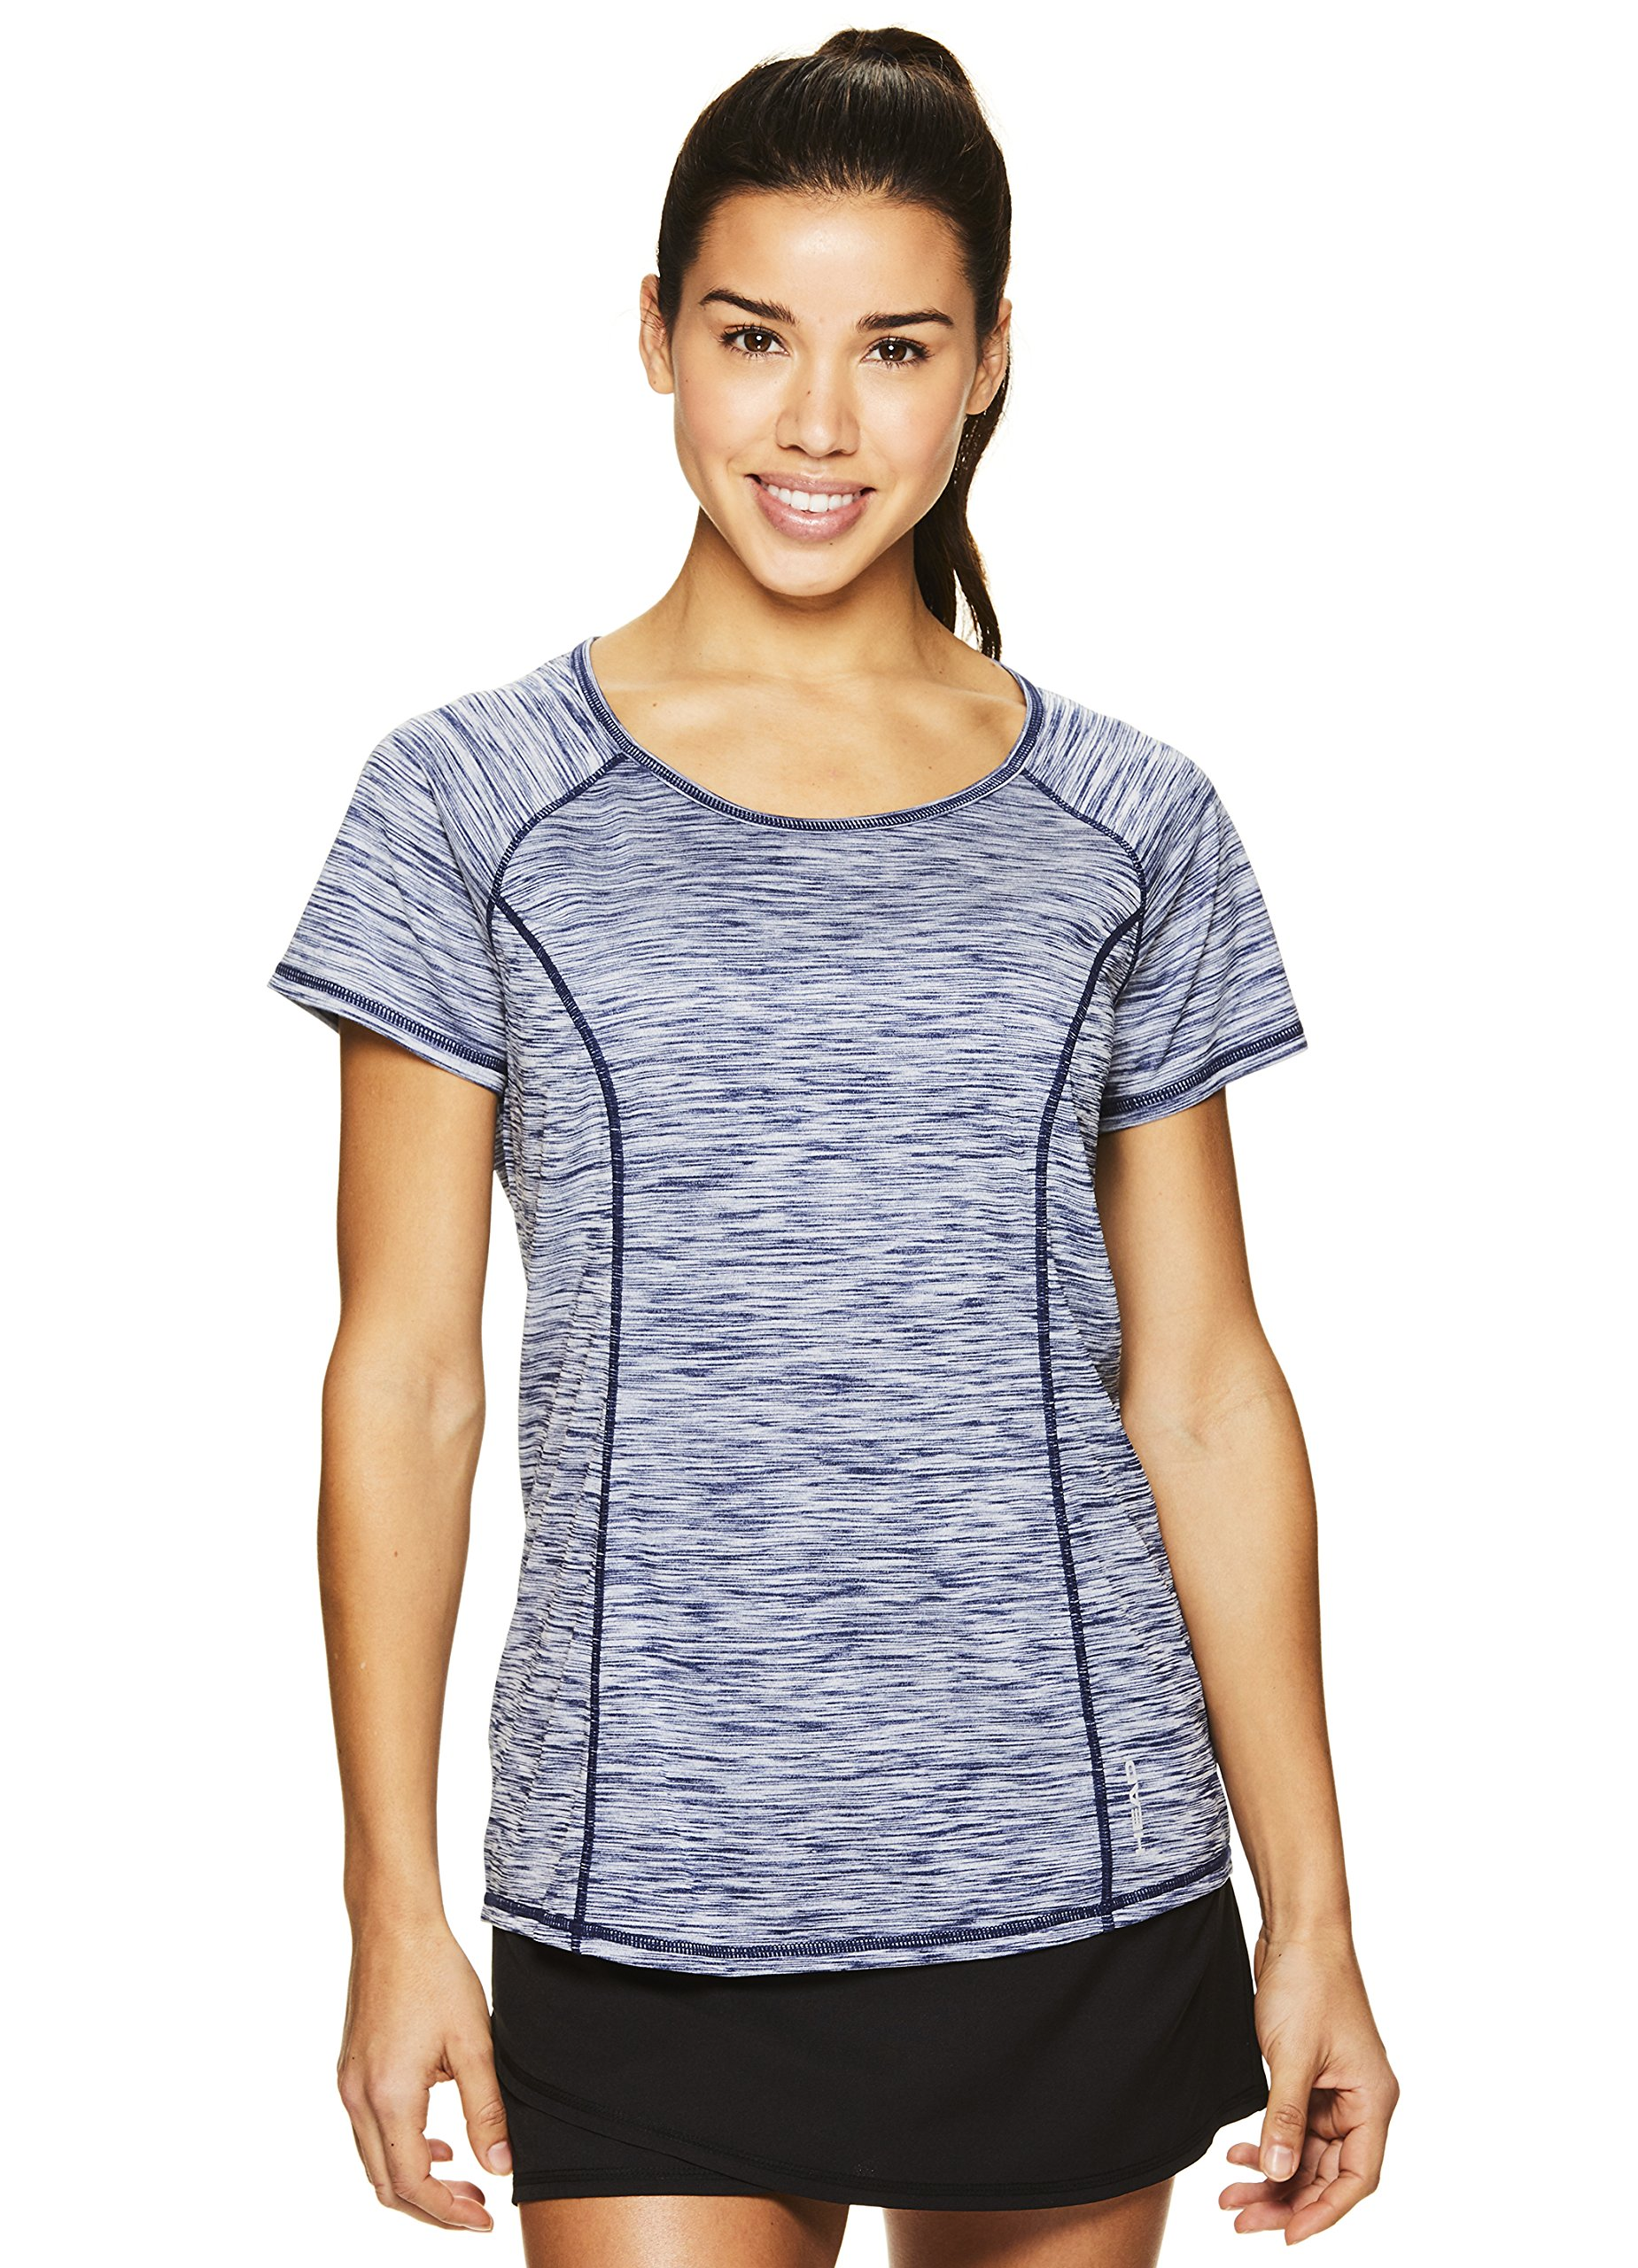 HEAD Women's Serena Short Sleeve Workout T-Shirt - Performance Crew Neck Activewear Top - Medieval Blue Heather, X-Small